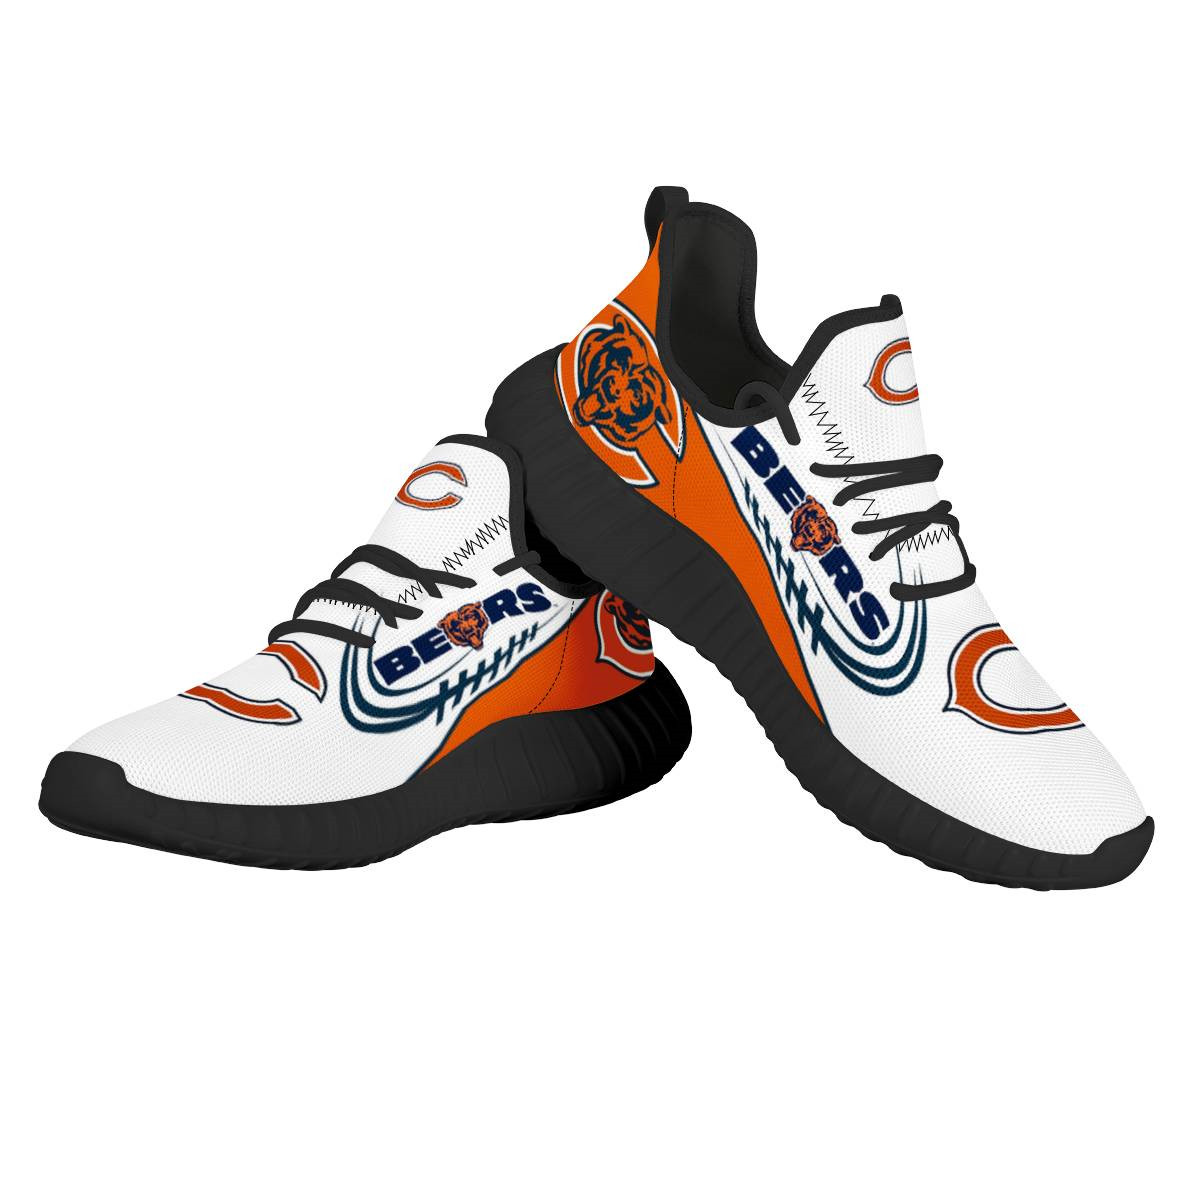 Women's NFL Chicago Bears Lightweight Running Shoes 017